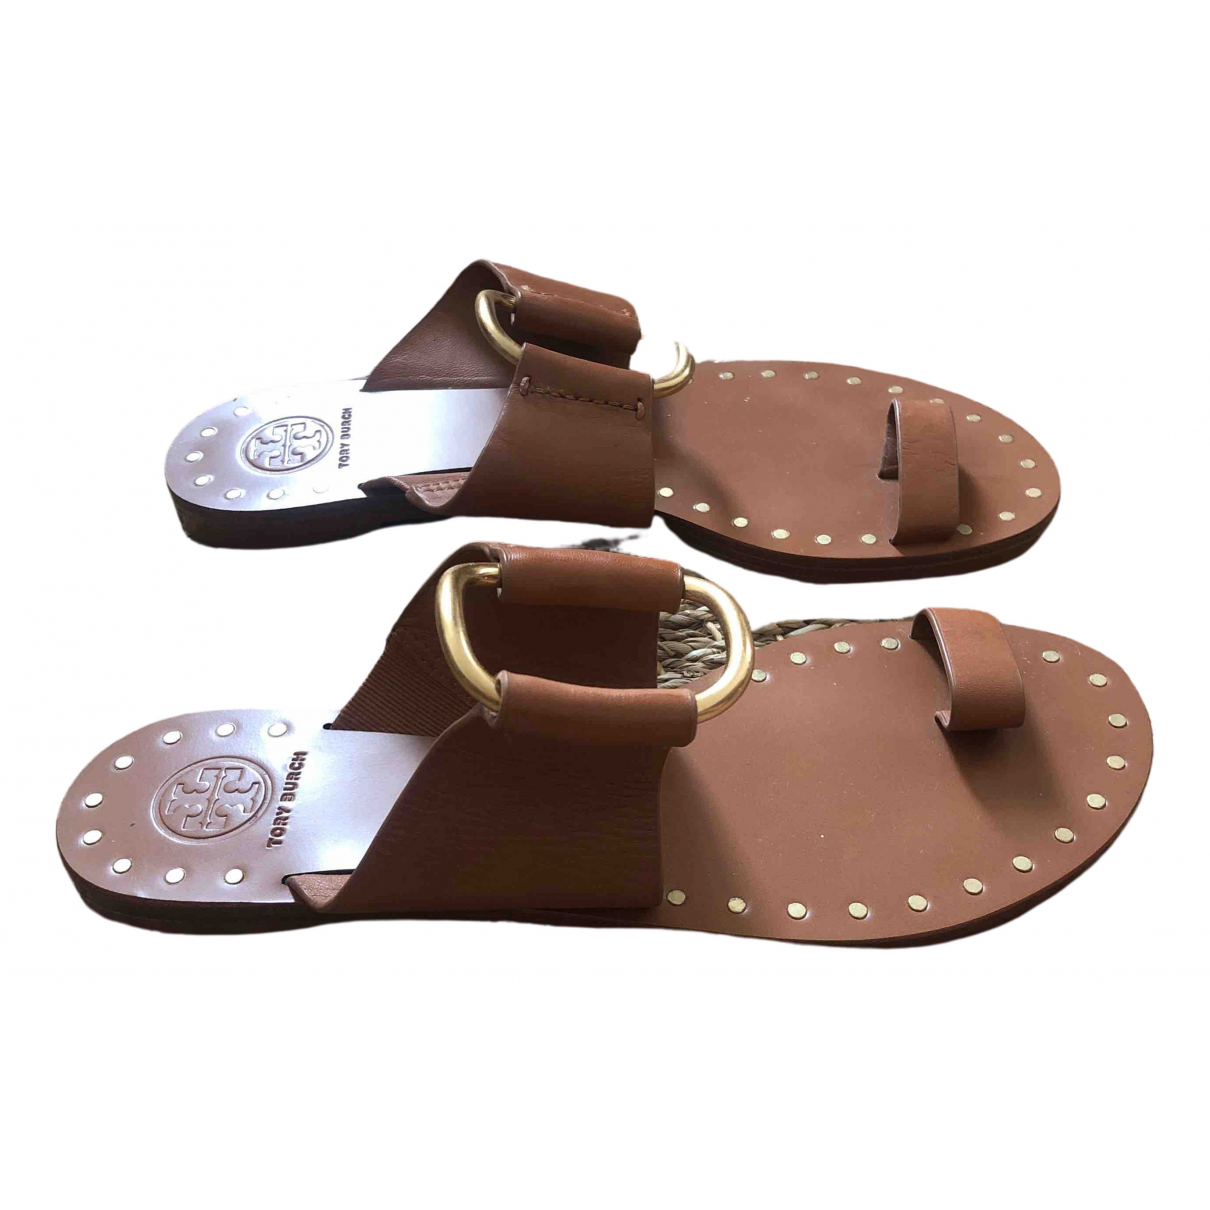 Tory Burch N Beige Leather Sandals for Women 7 US